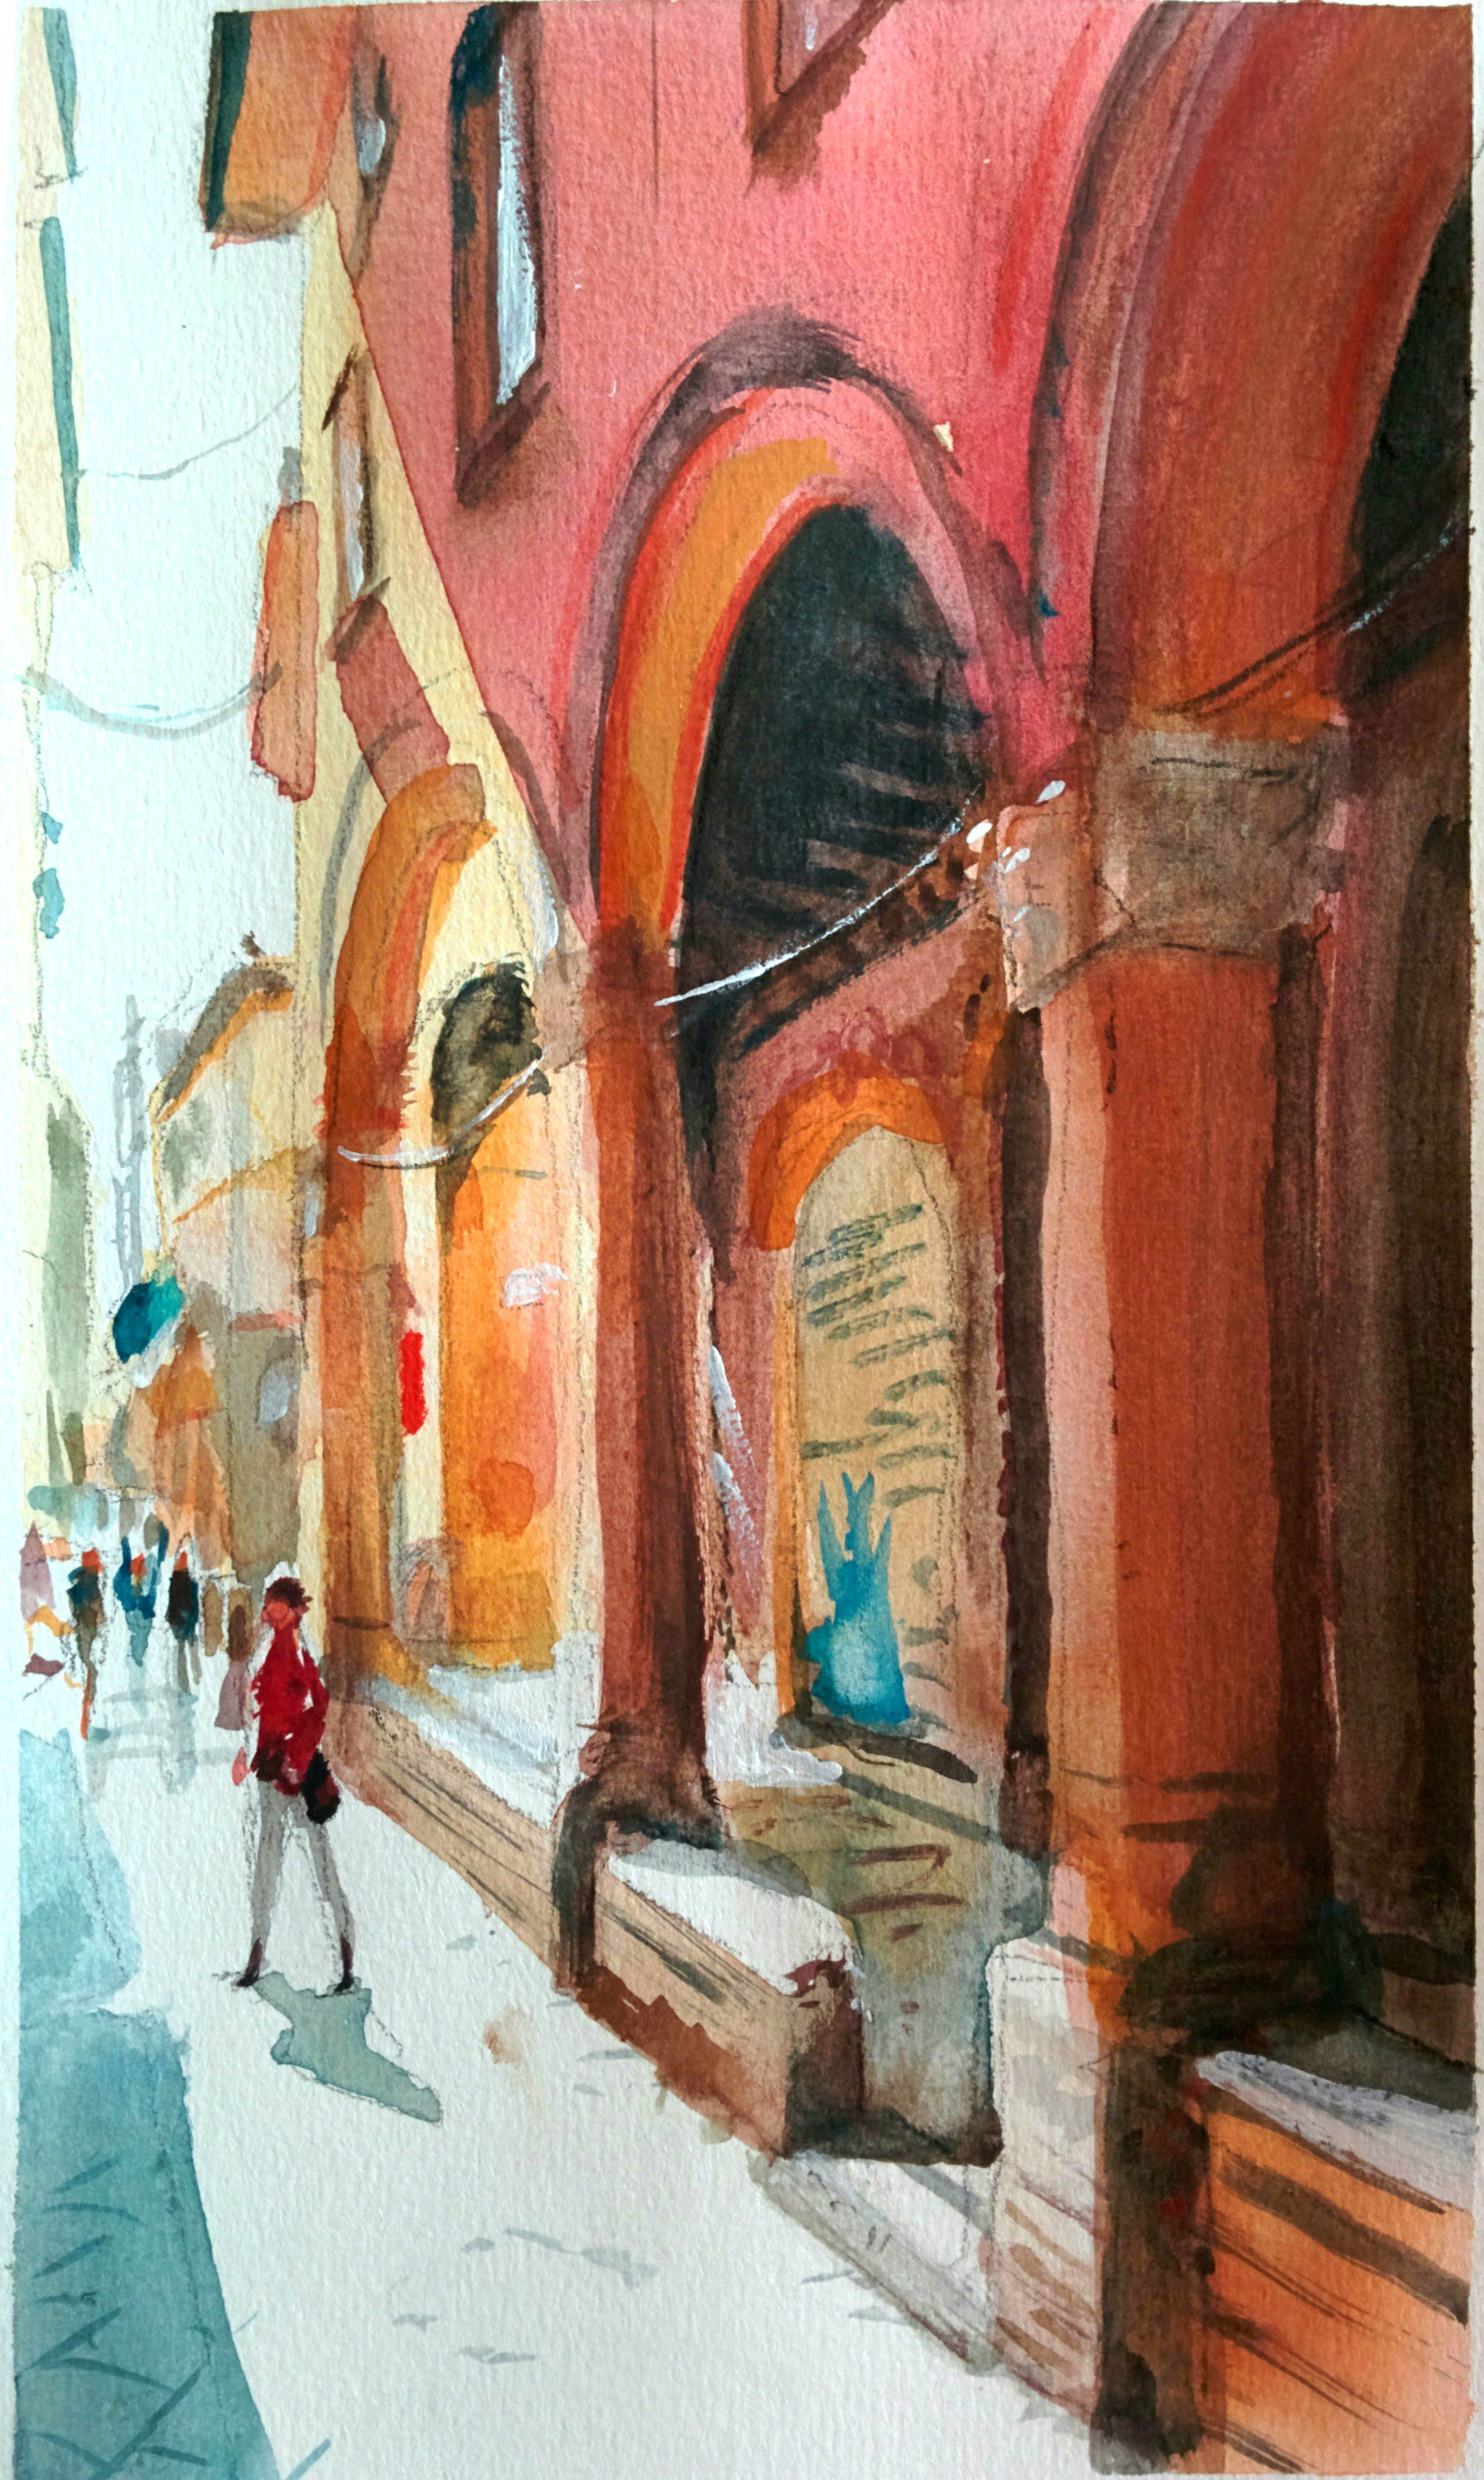 Paolo giandoso watercolor 06